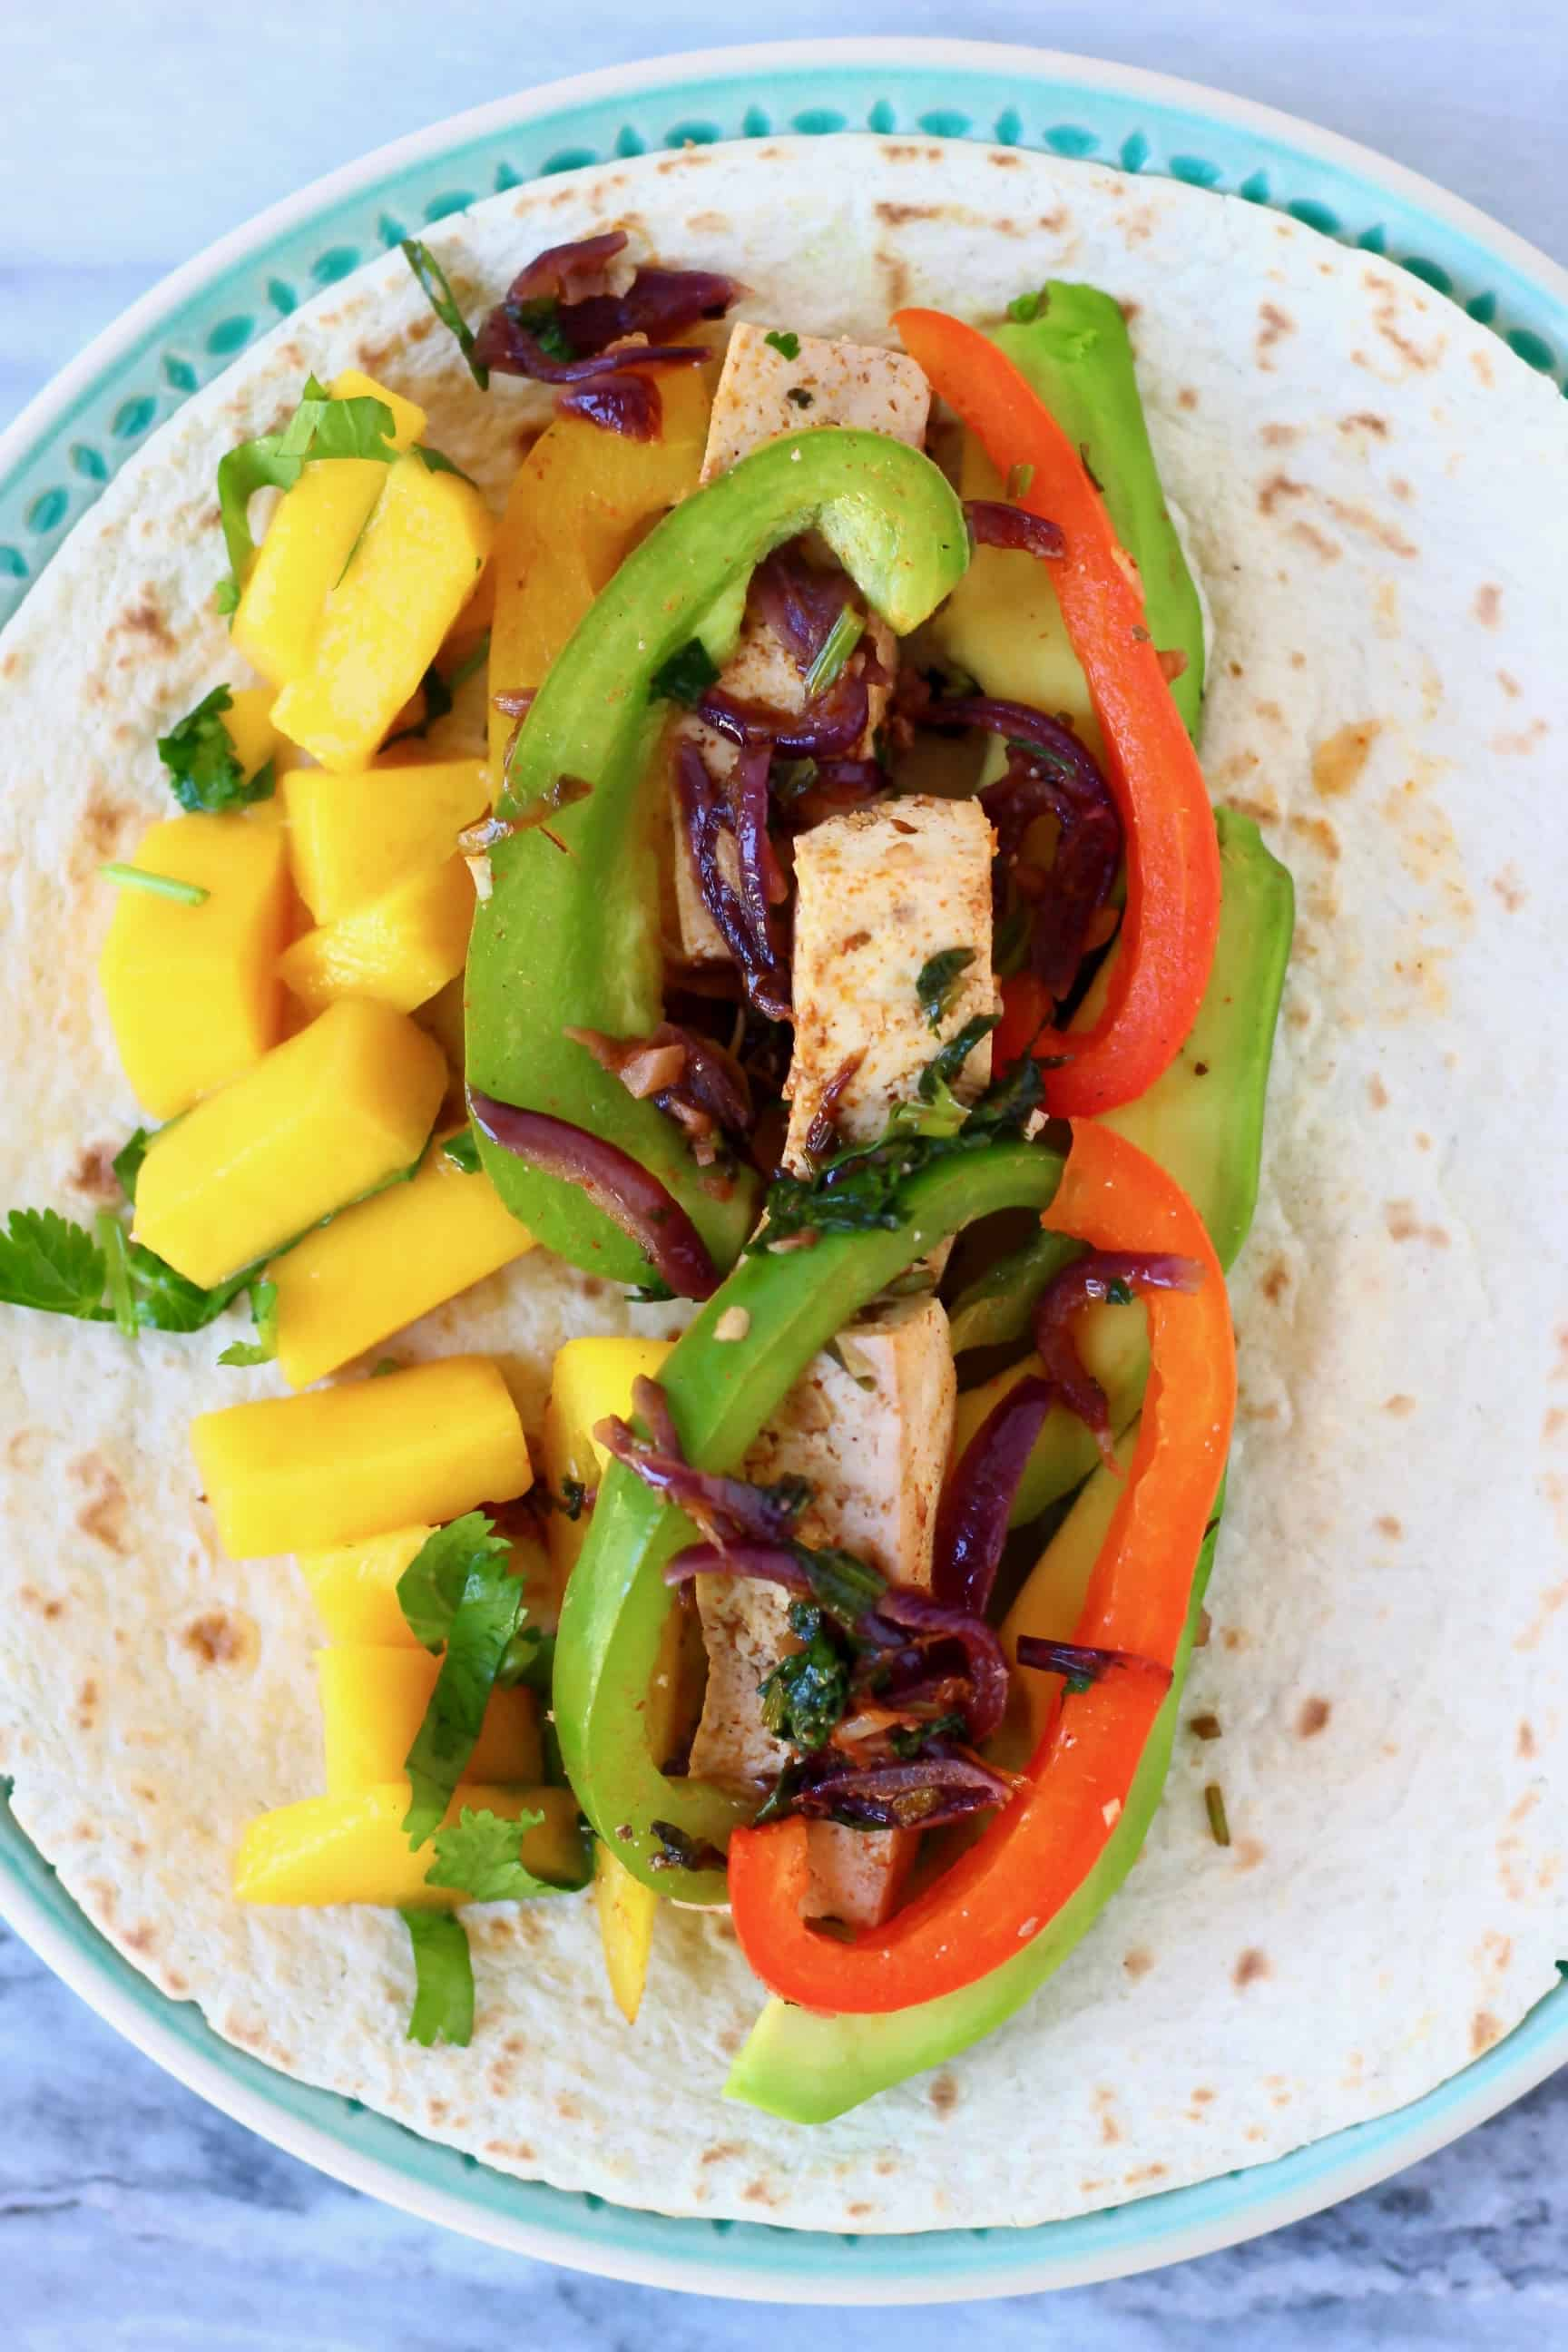 Photo of tofu, sliced peppers and diced mango on a tortilla on a blue plate